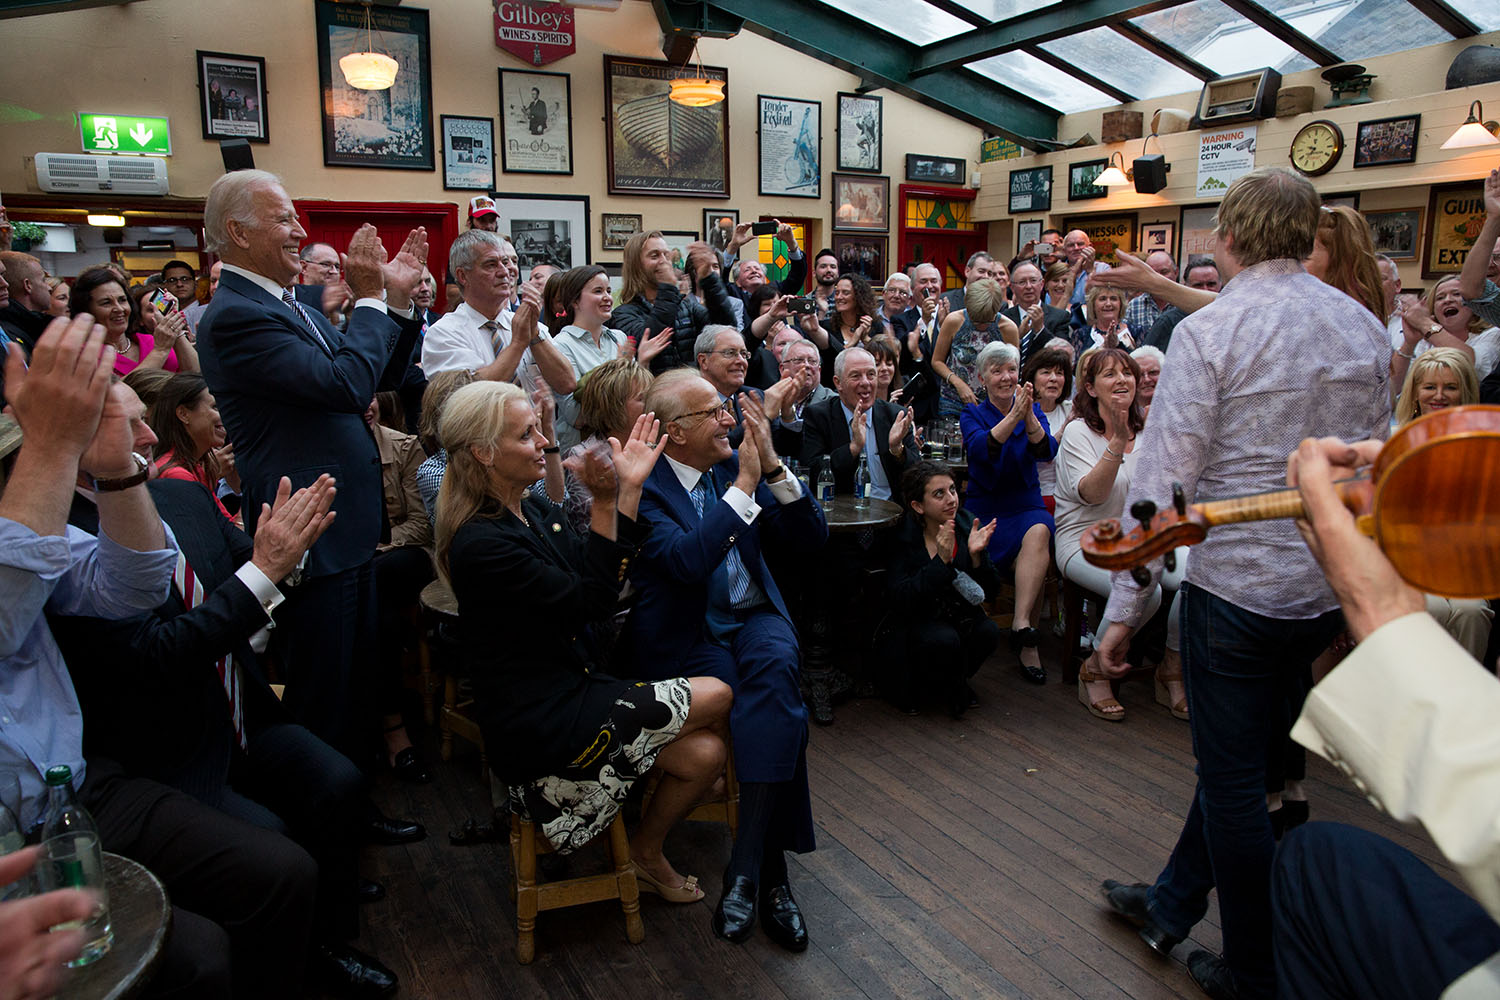 Vice President Joe Biden applauds for Irish dancers and the band the Chieftains, at Matt Malloy's pub in Westport, Ireland, June 22, 2016. (Official White House Photo by David Lienemann)